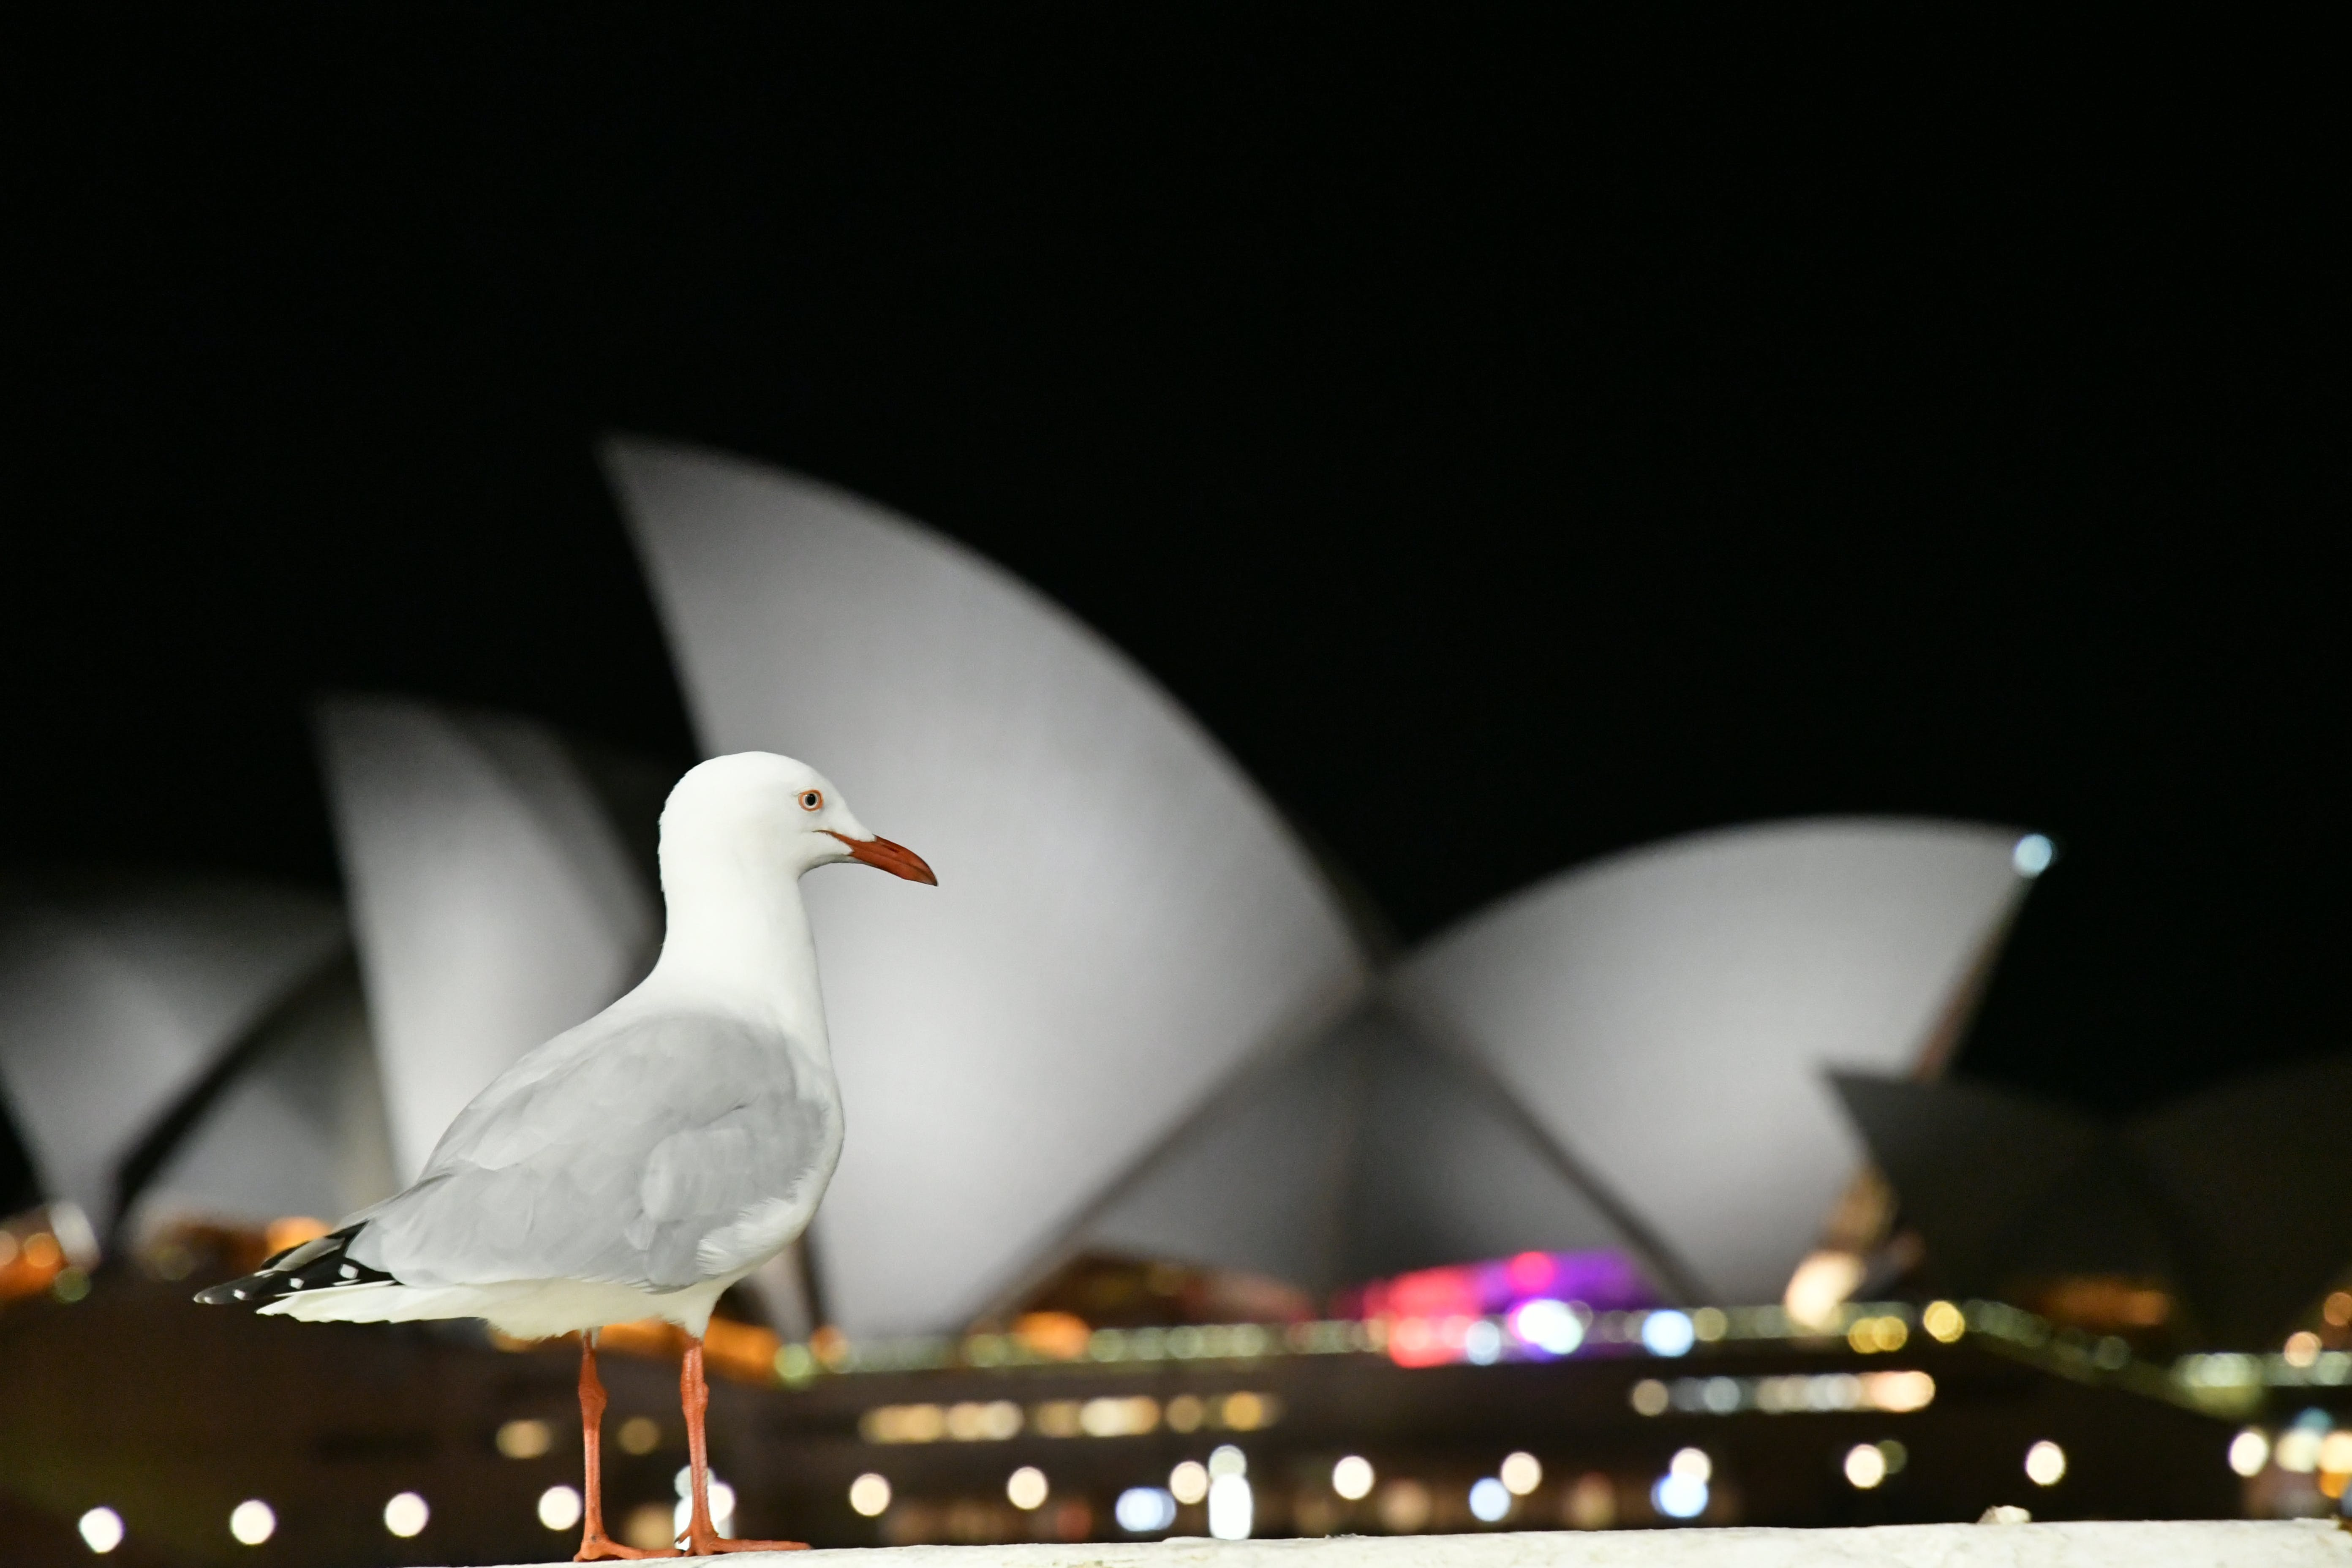 Selective Focus Photo of Sydneyt Opera House, Australia